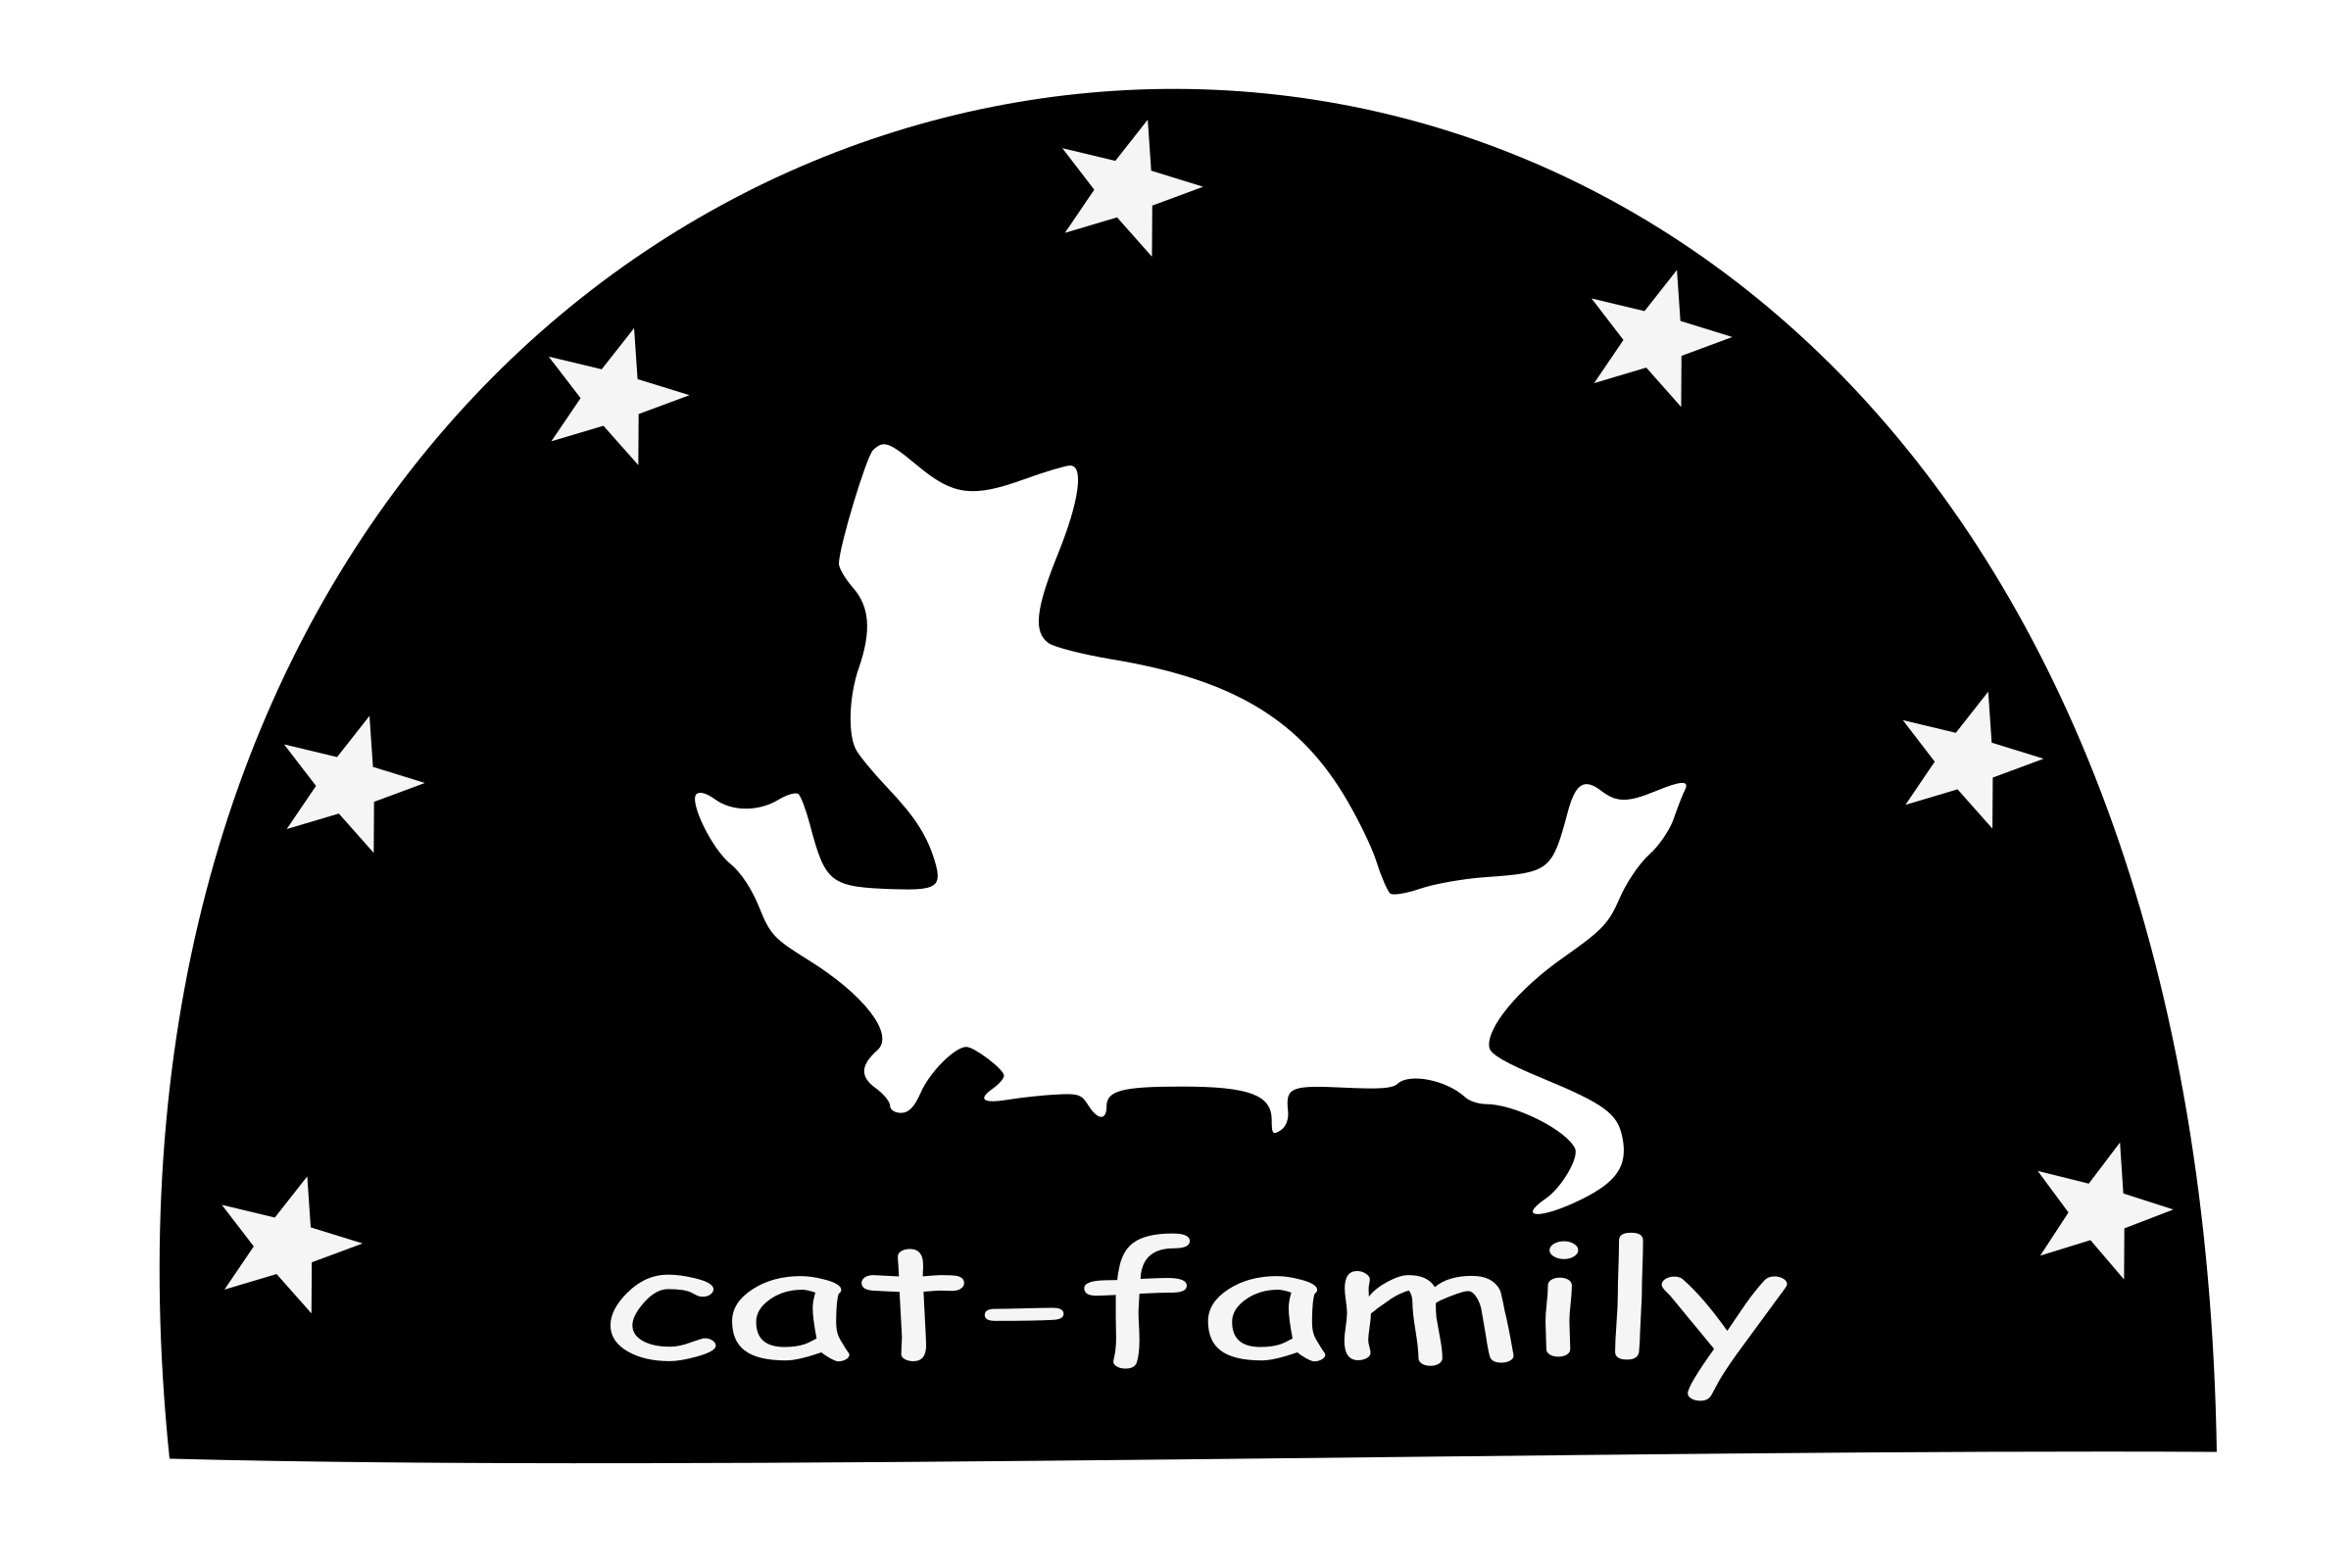 Cat family clipart free download Clipart - Cat-family-silhouette free download